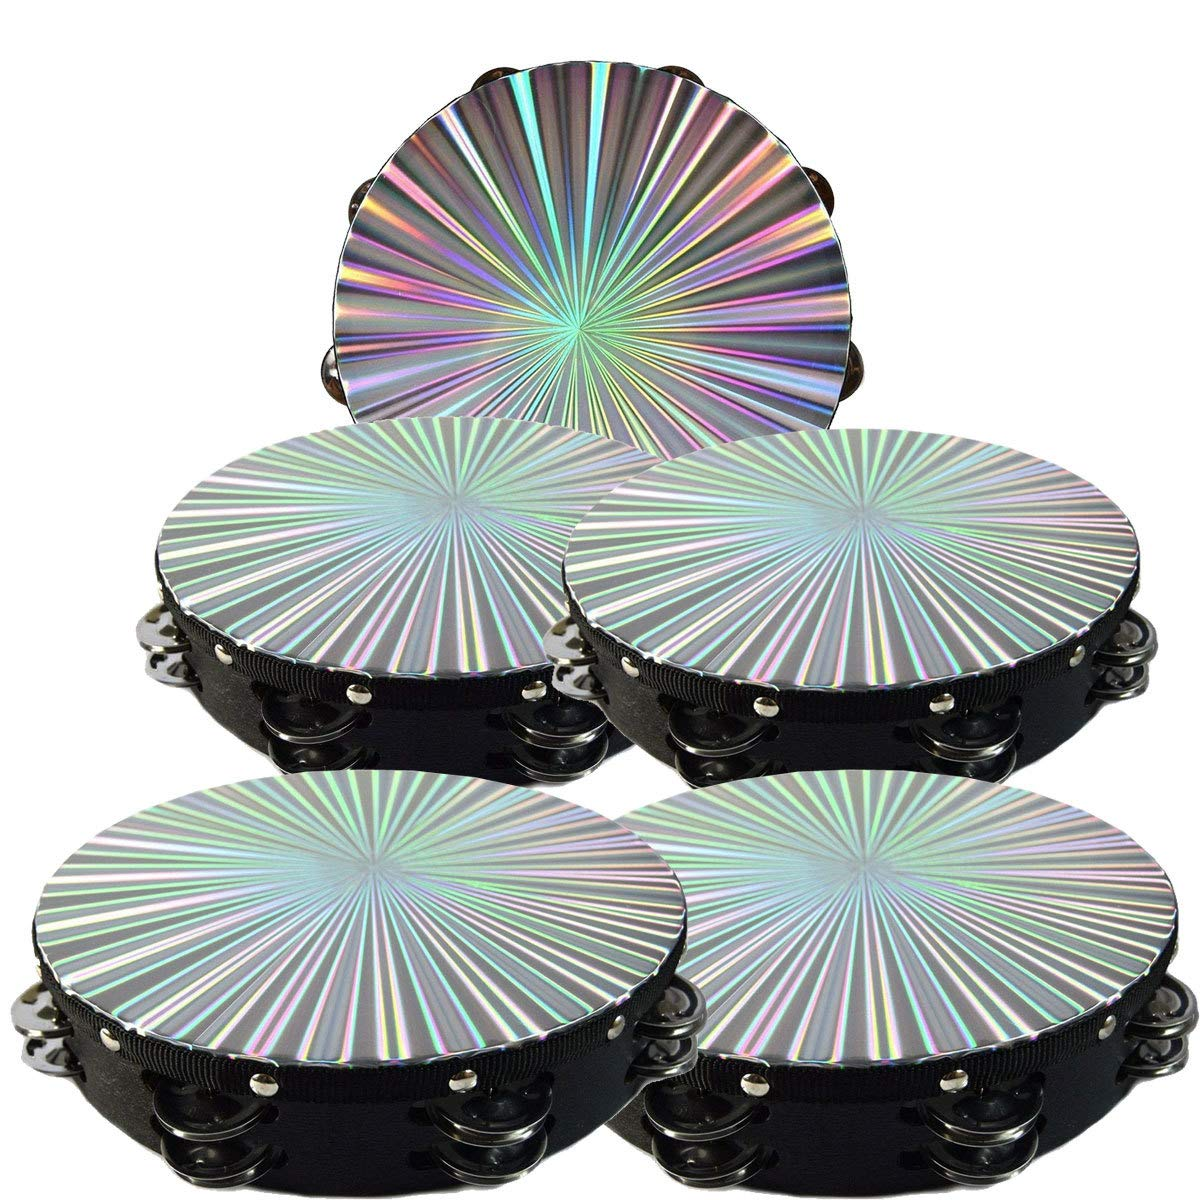 5 Pack 8'' 3D Tambourine Music Double Row Jingle Percussion Instrument Church by Zebra Sound